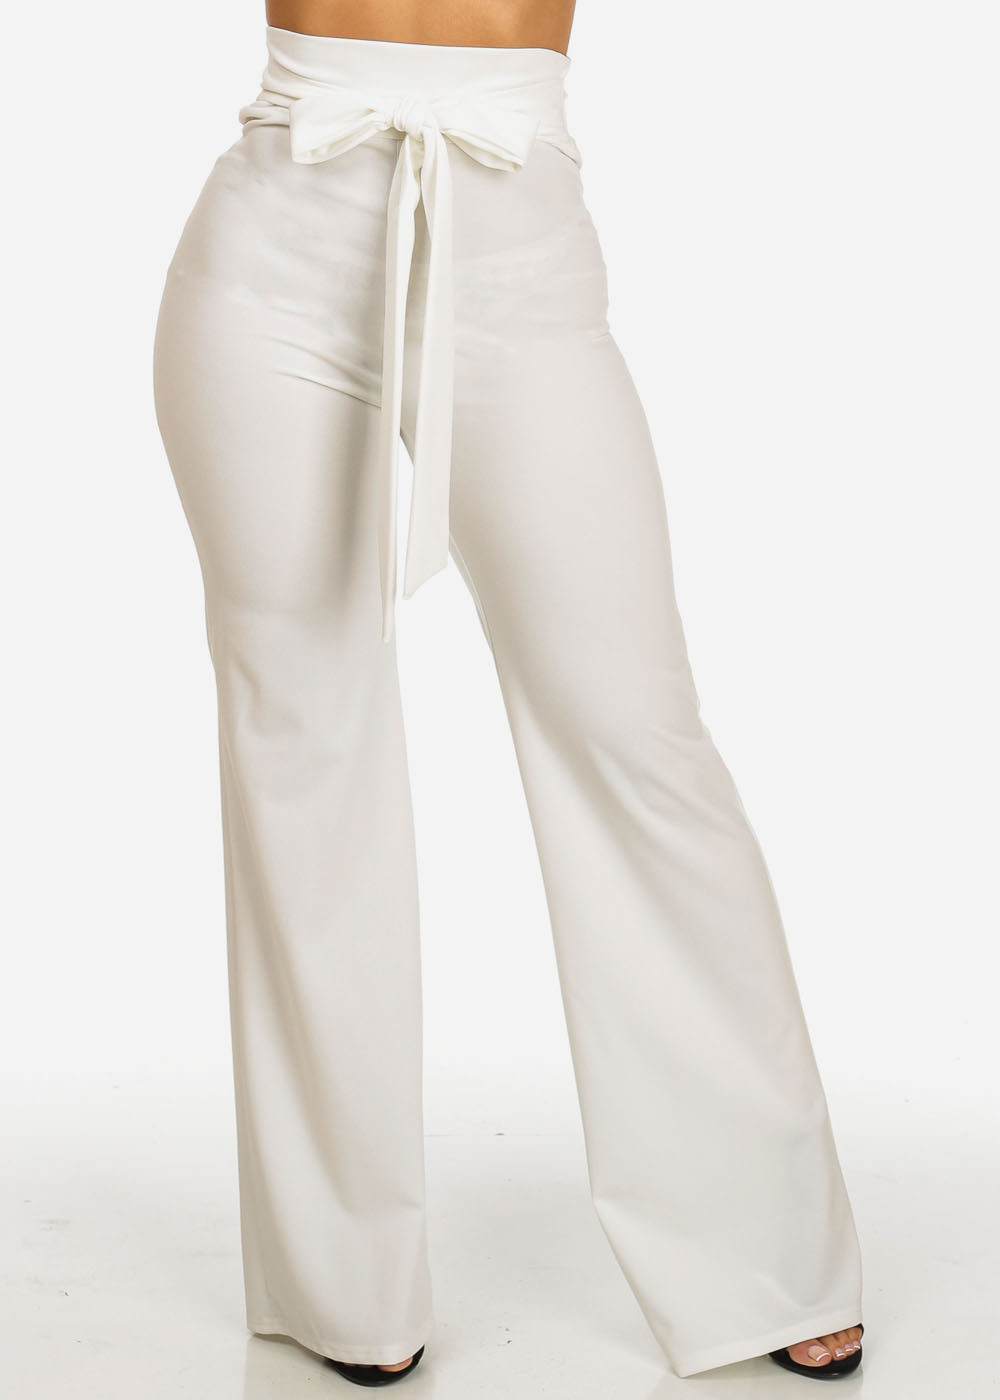 Womens Juniors Evening Wear Ivory High Waisted Slim Fit Wide Leg Pants 30677I